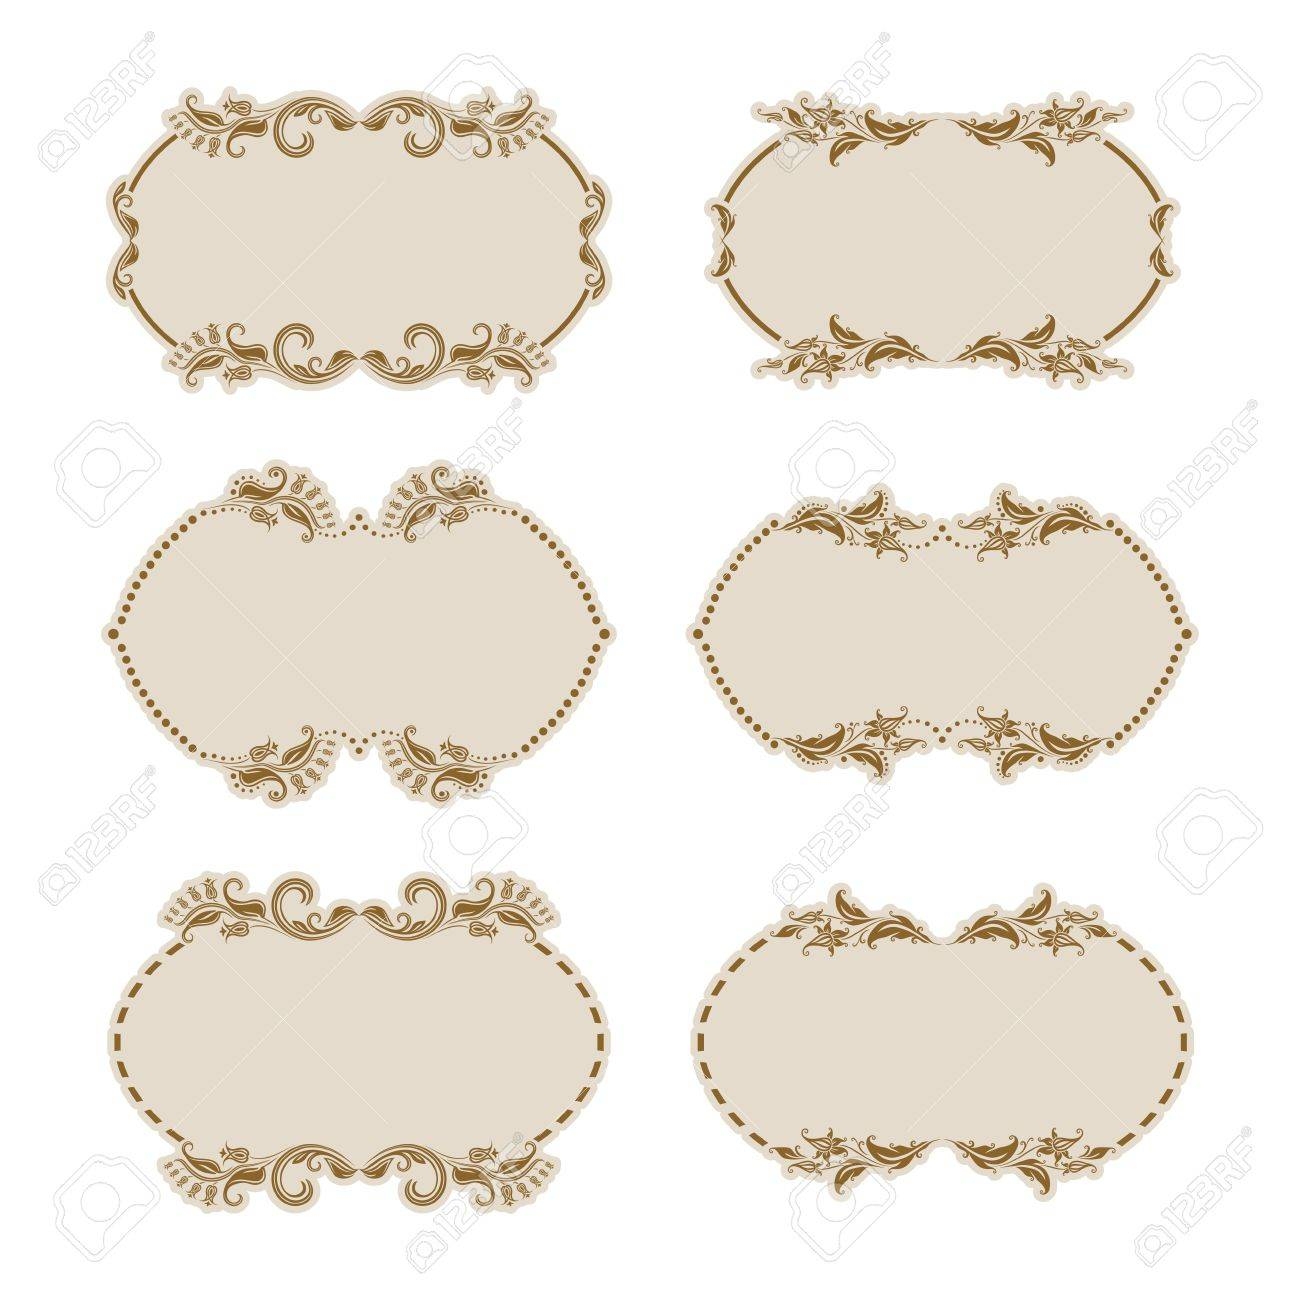 Set of ornate floral vector frames for invitations or announcements  In vintage style Stock Vector - 15327702